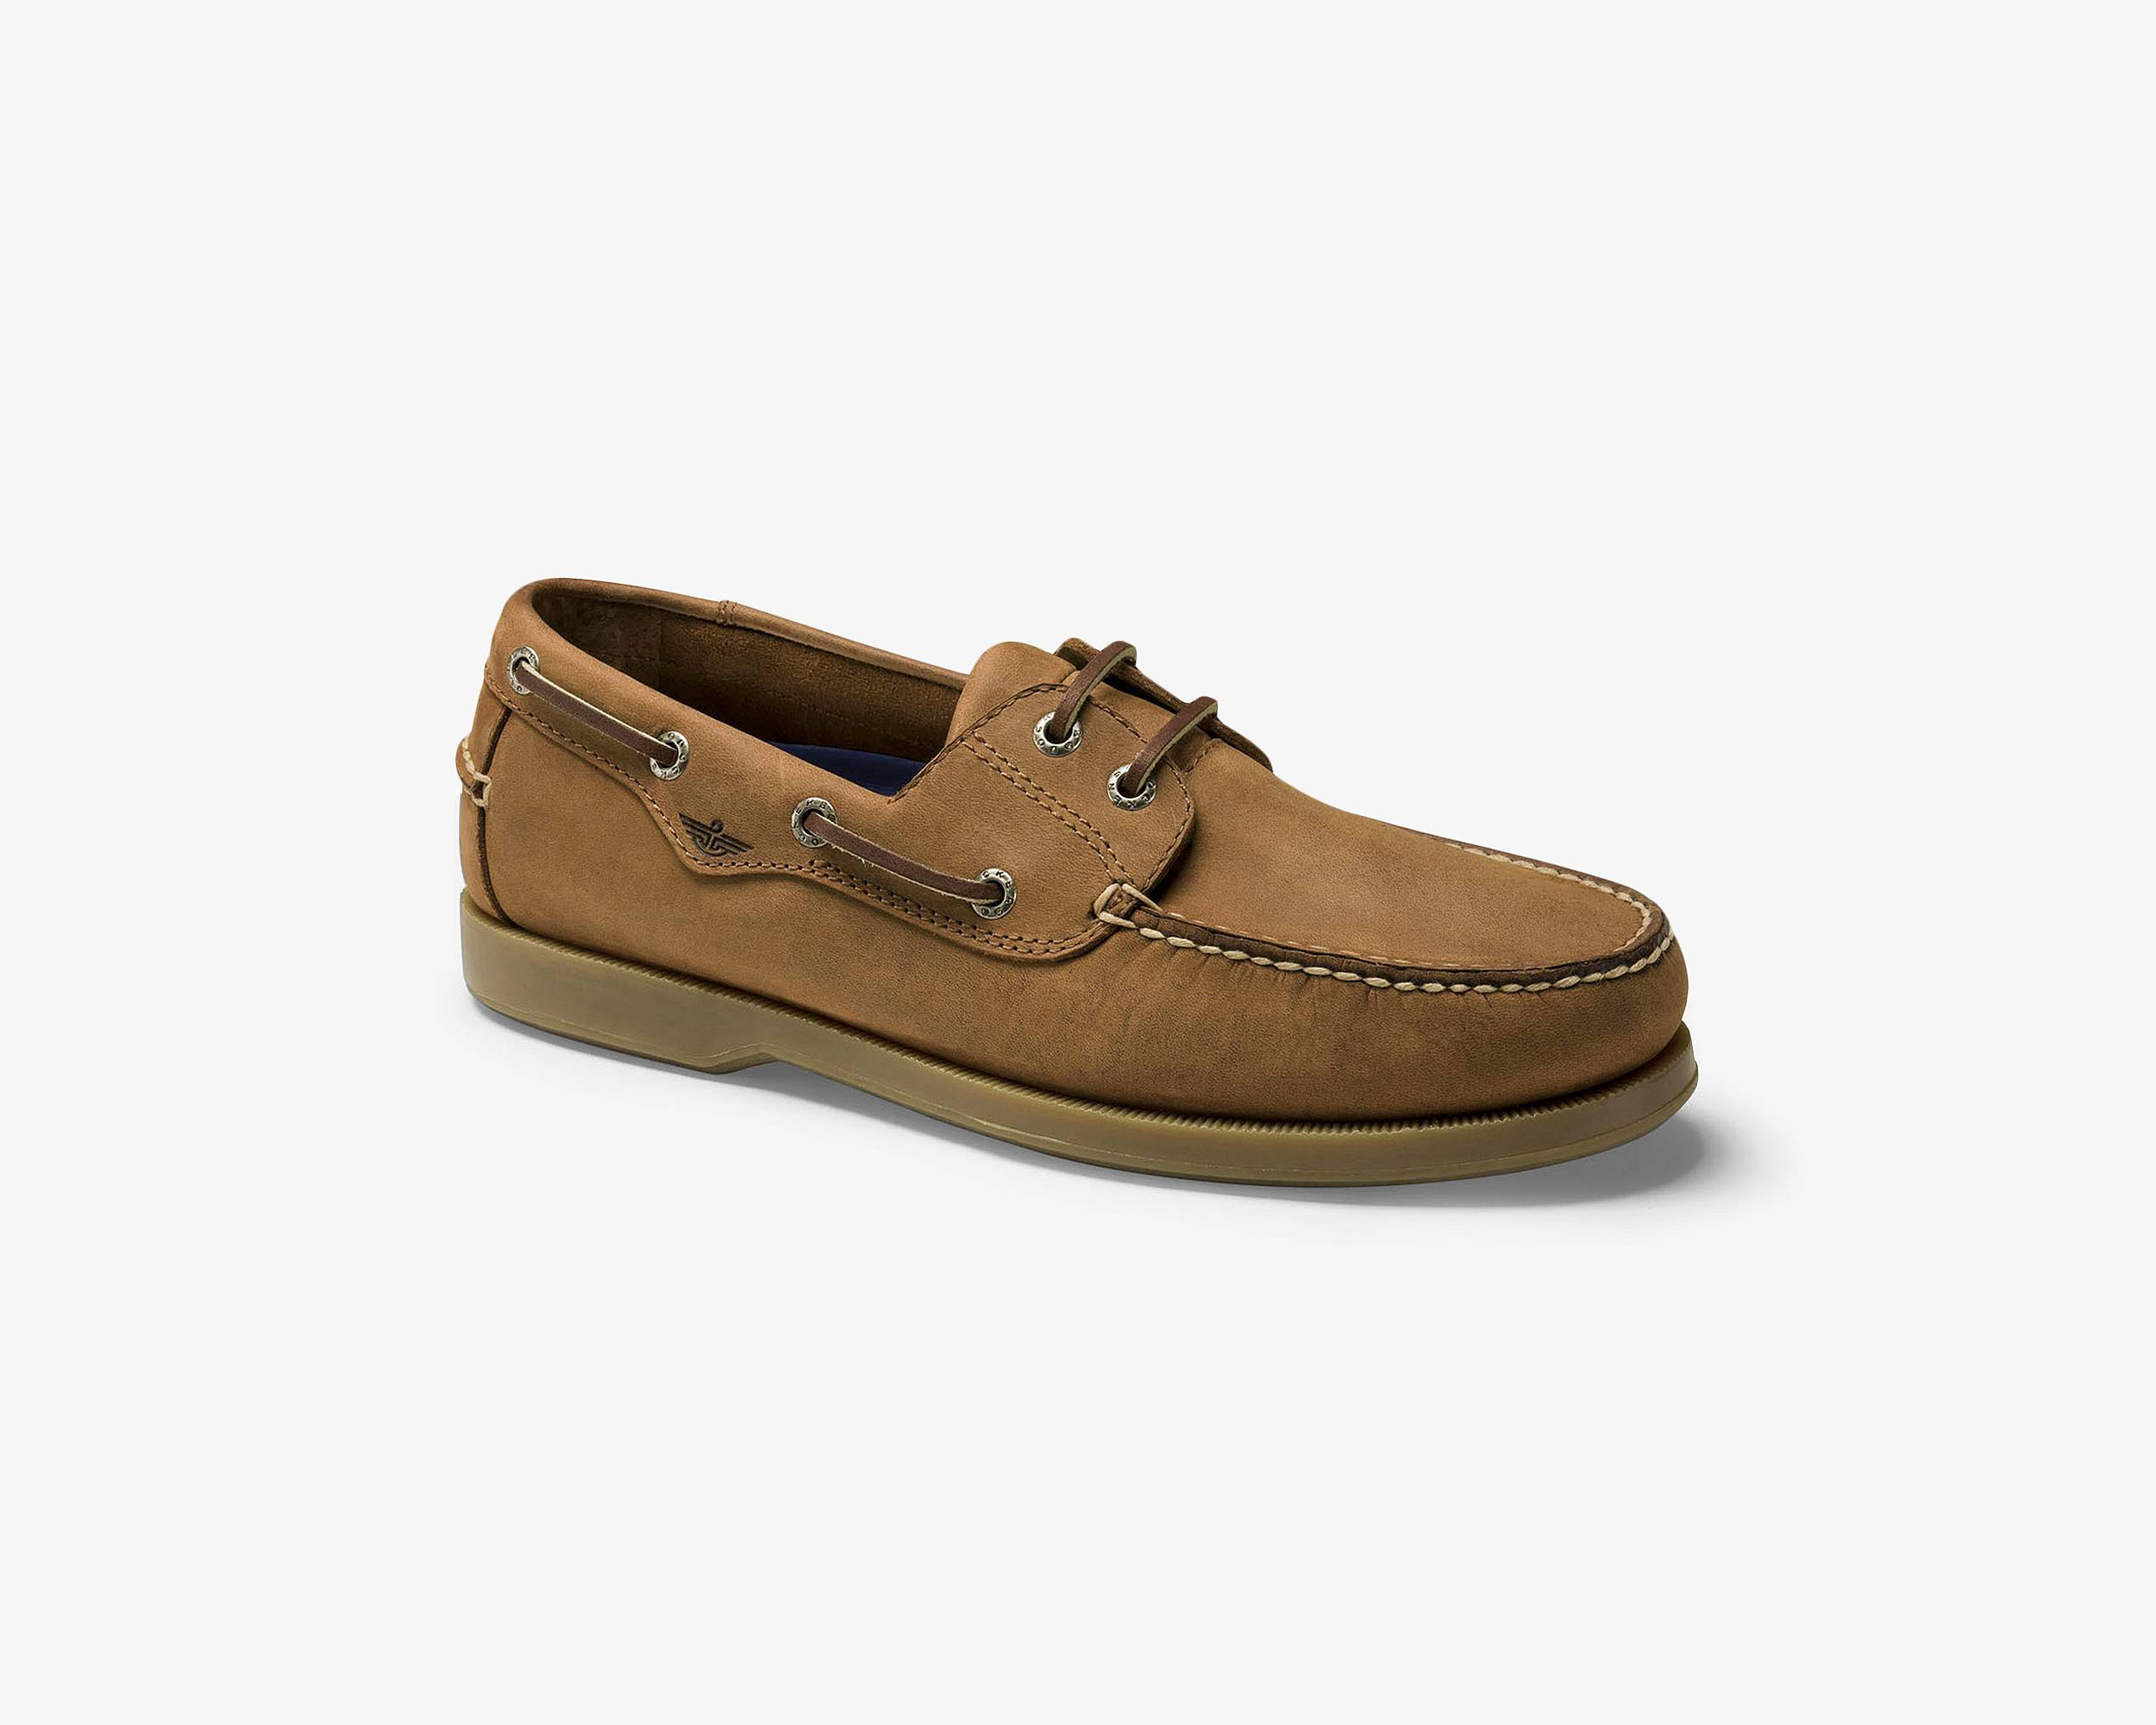 Dockers Boat Shoes Mens Brown Slip On Casual